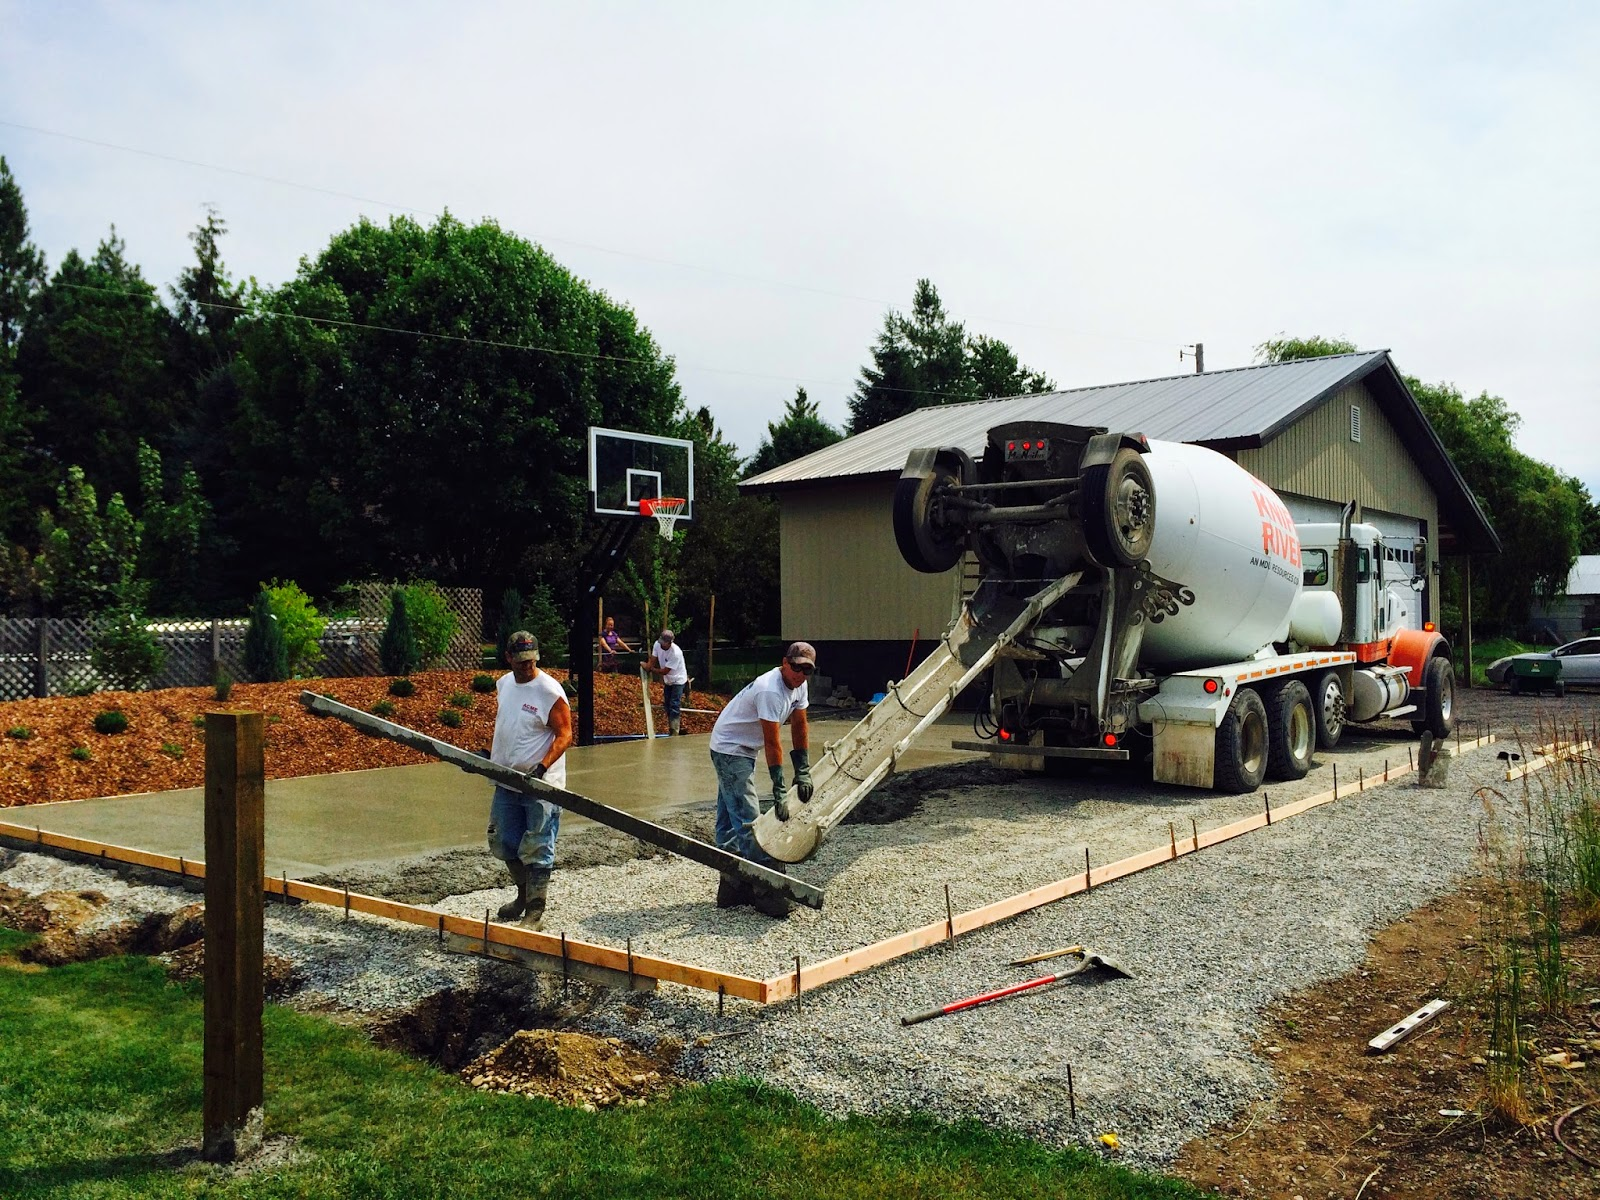 concrete slab for pickleball court